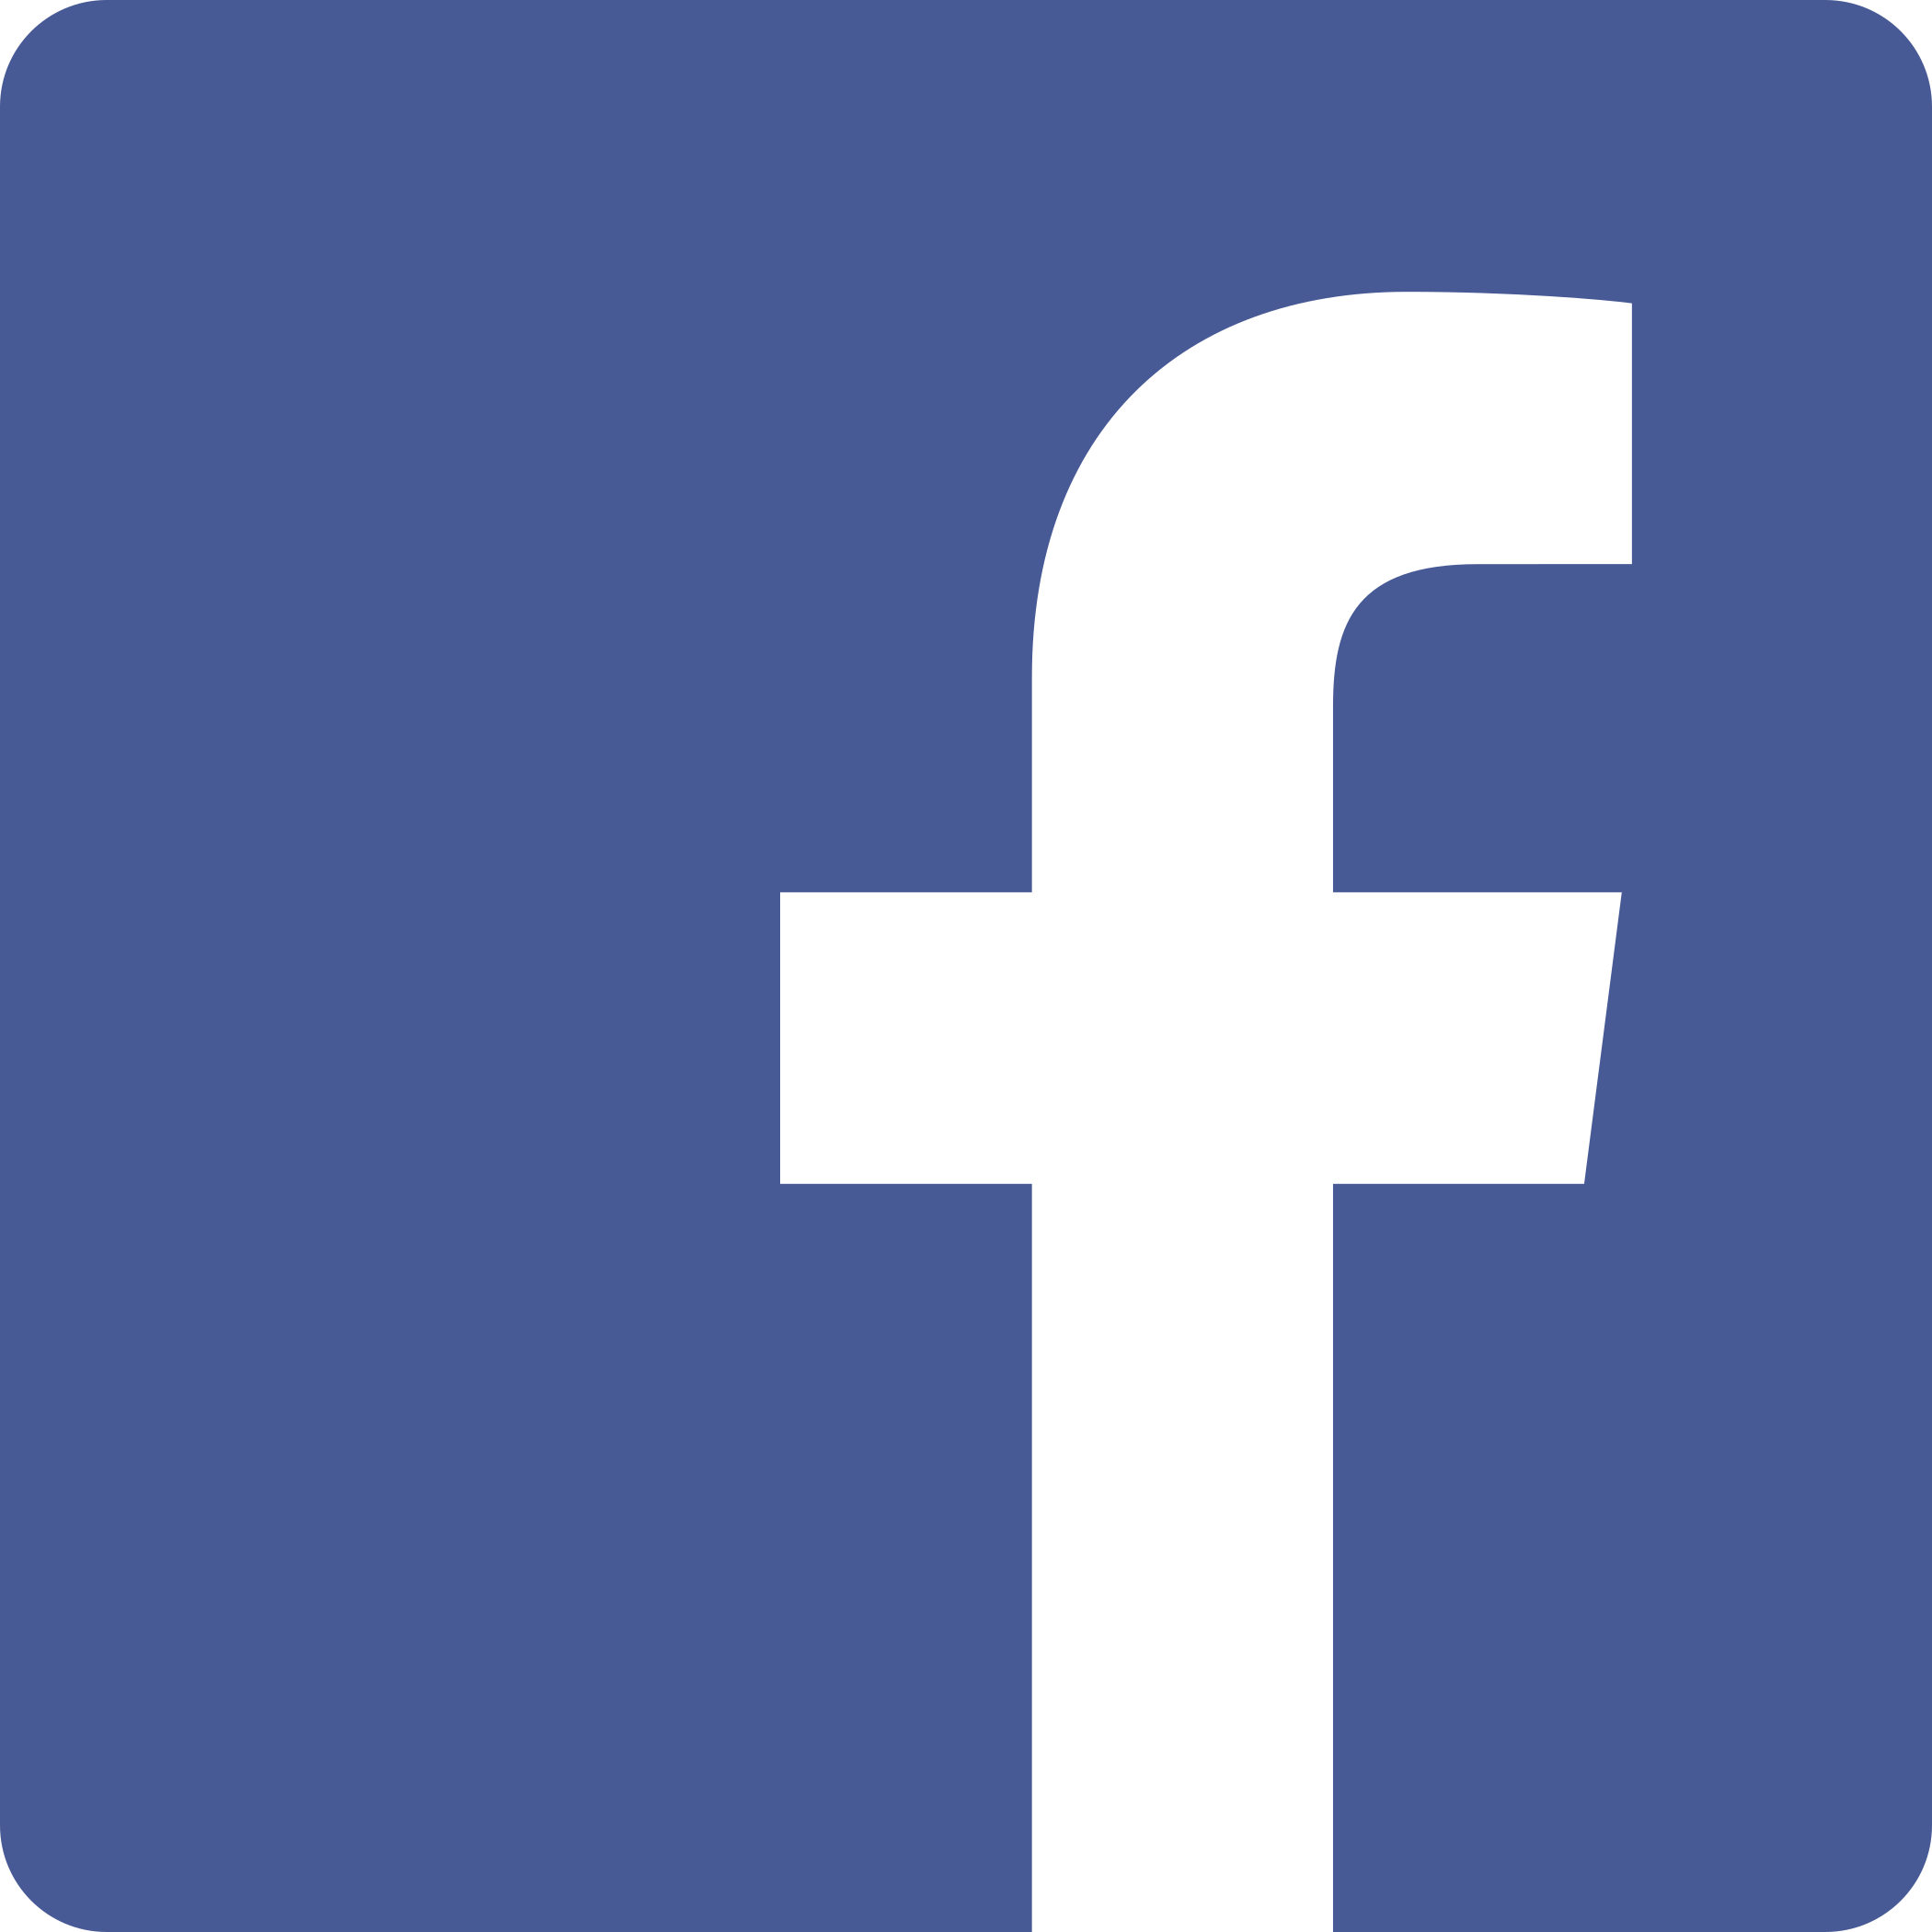 facebook-icone-icon-1